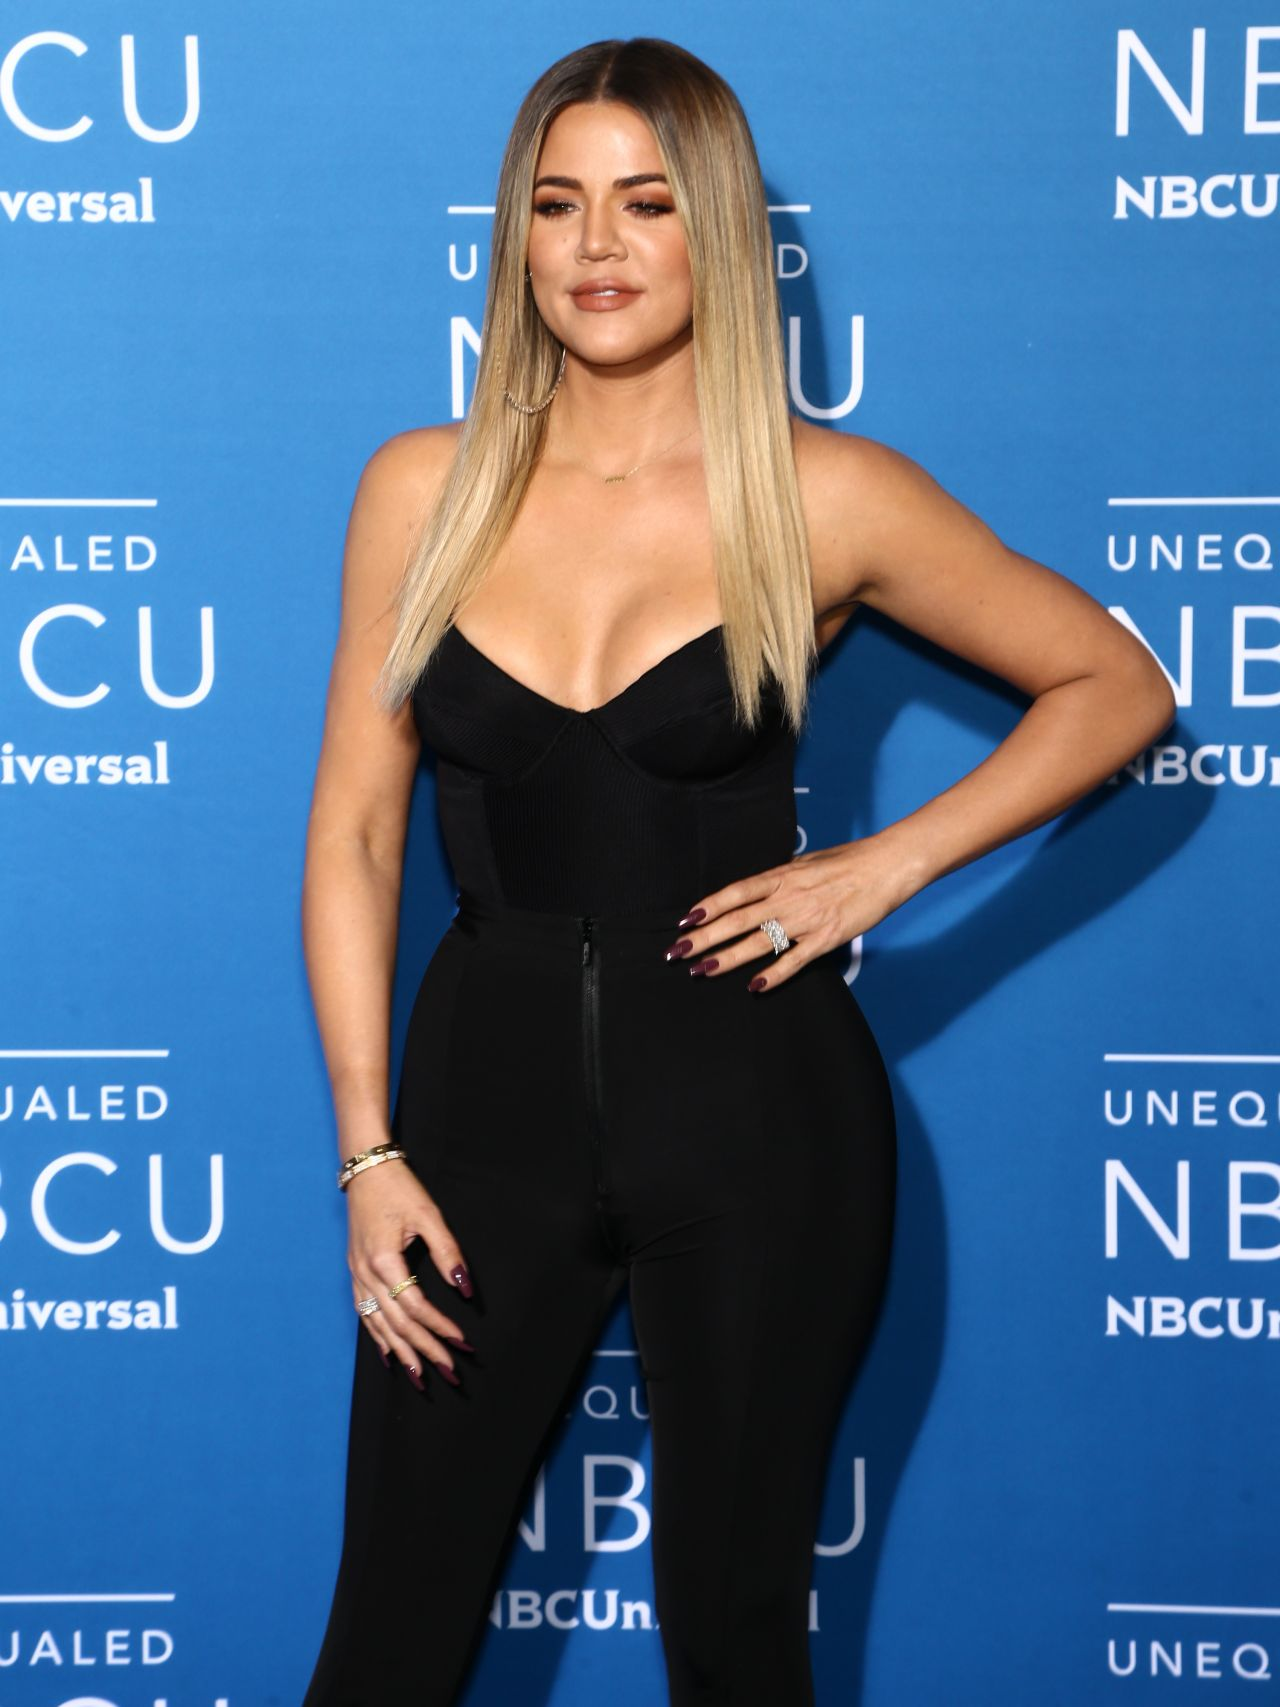 khloe kardashian - photo #21